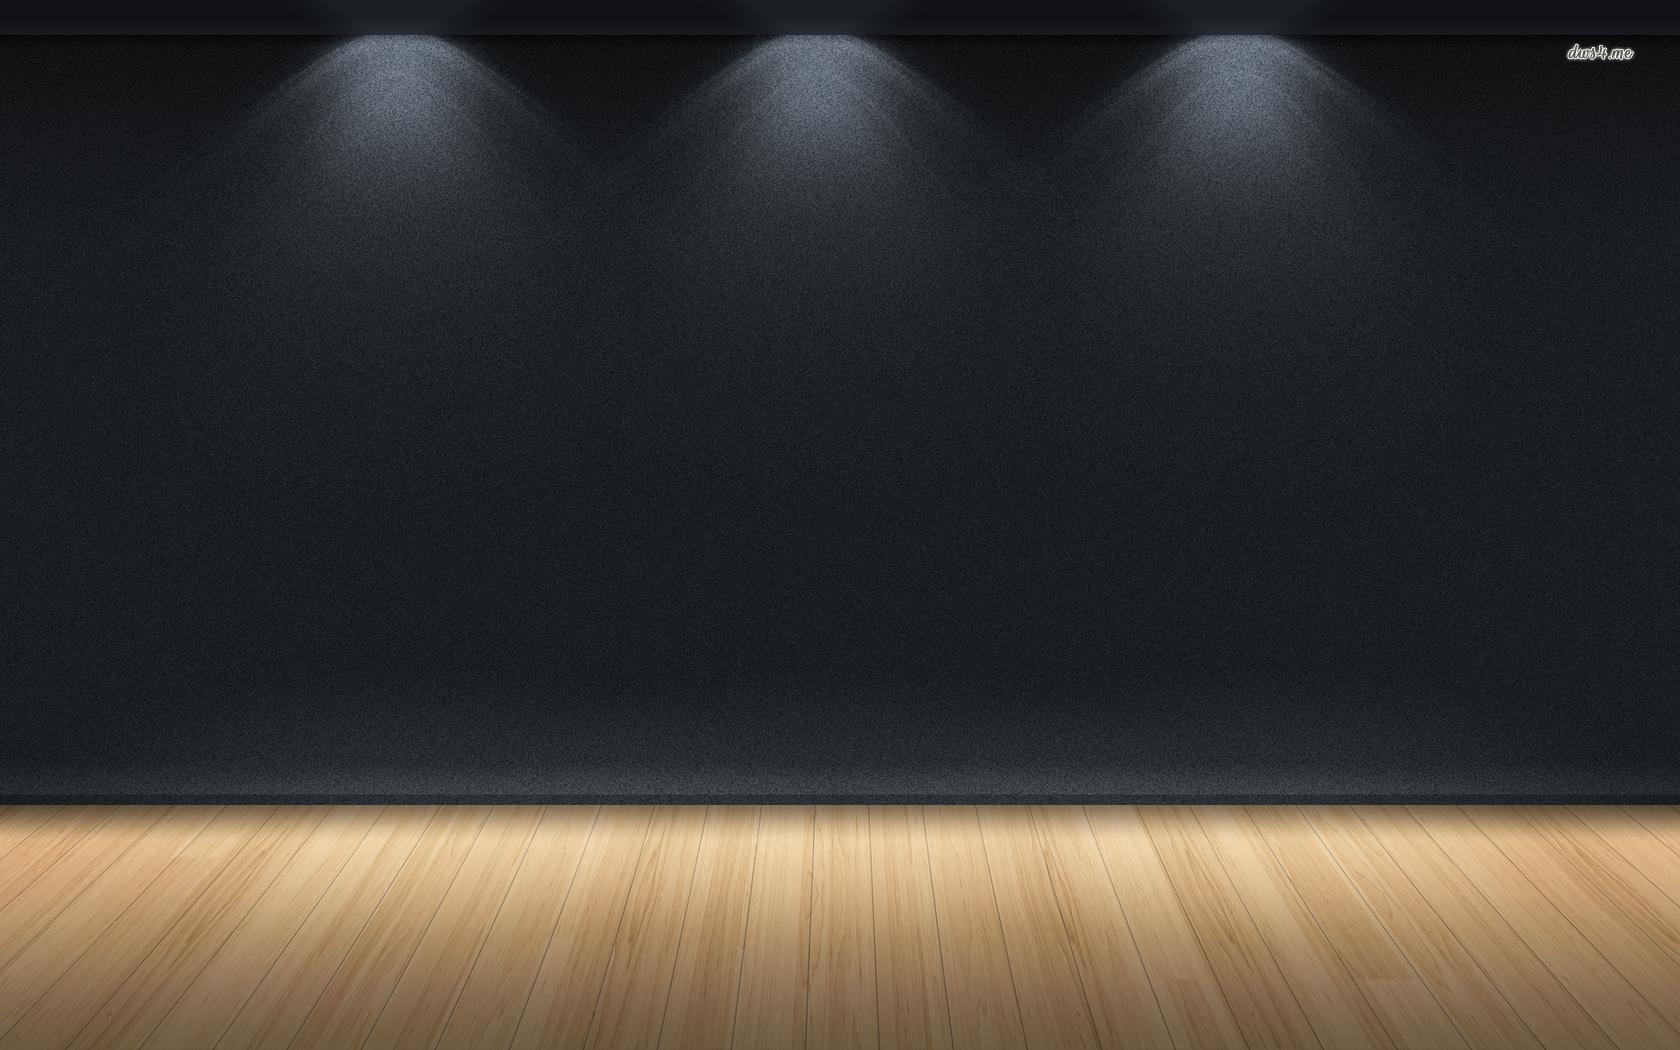 Stage Backgrounds Image